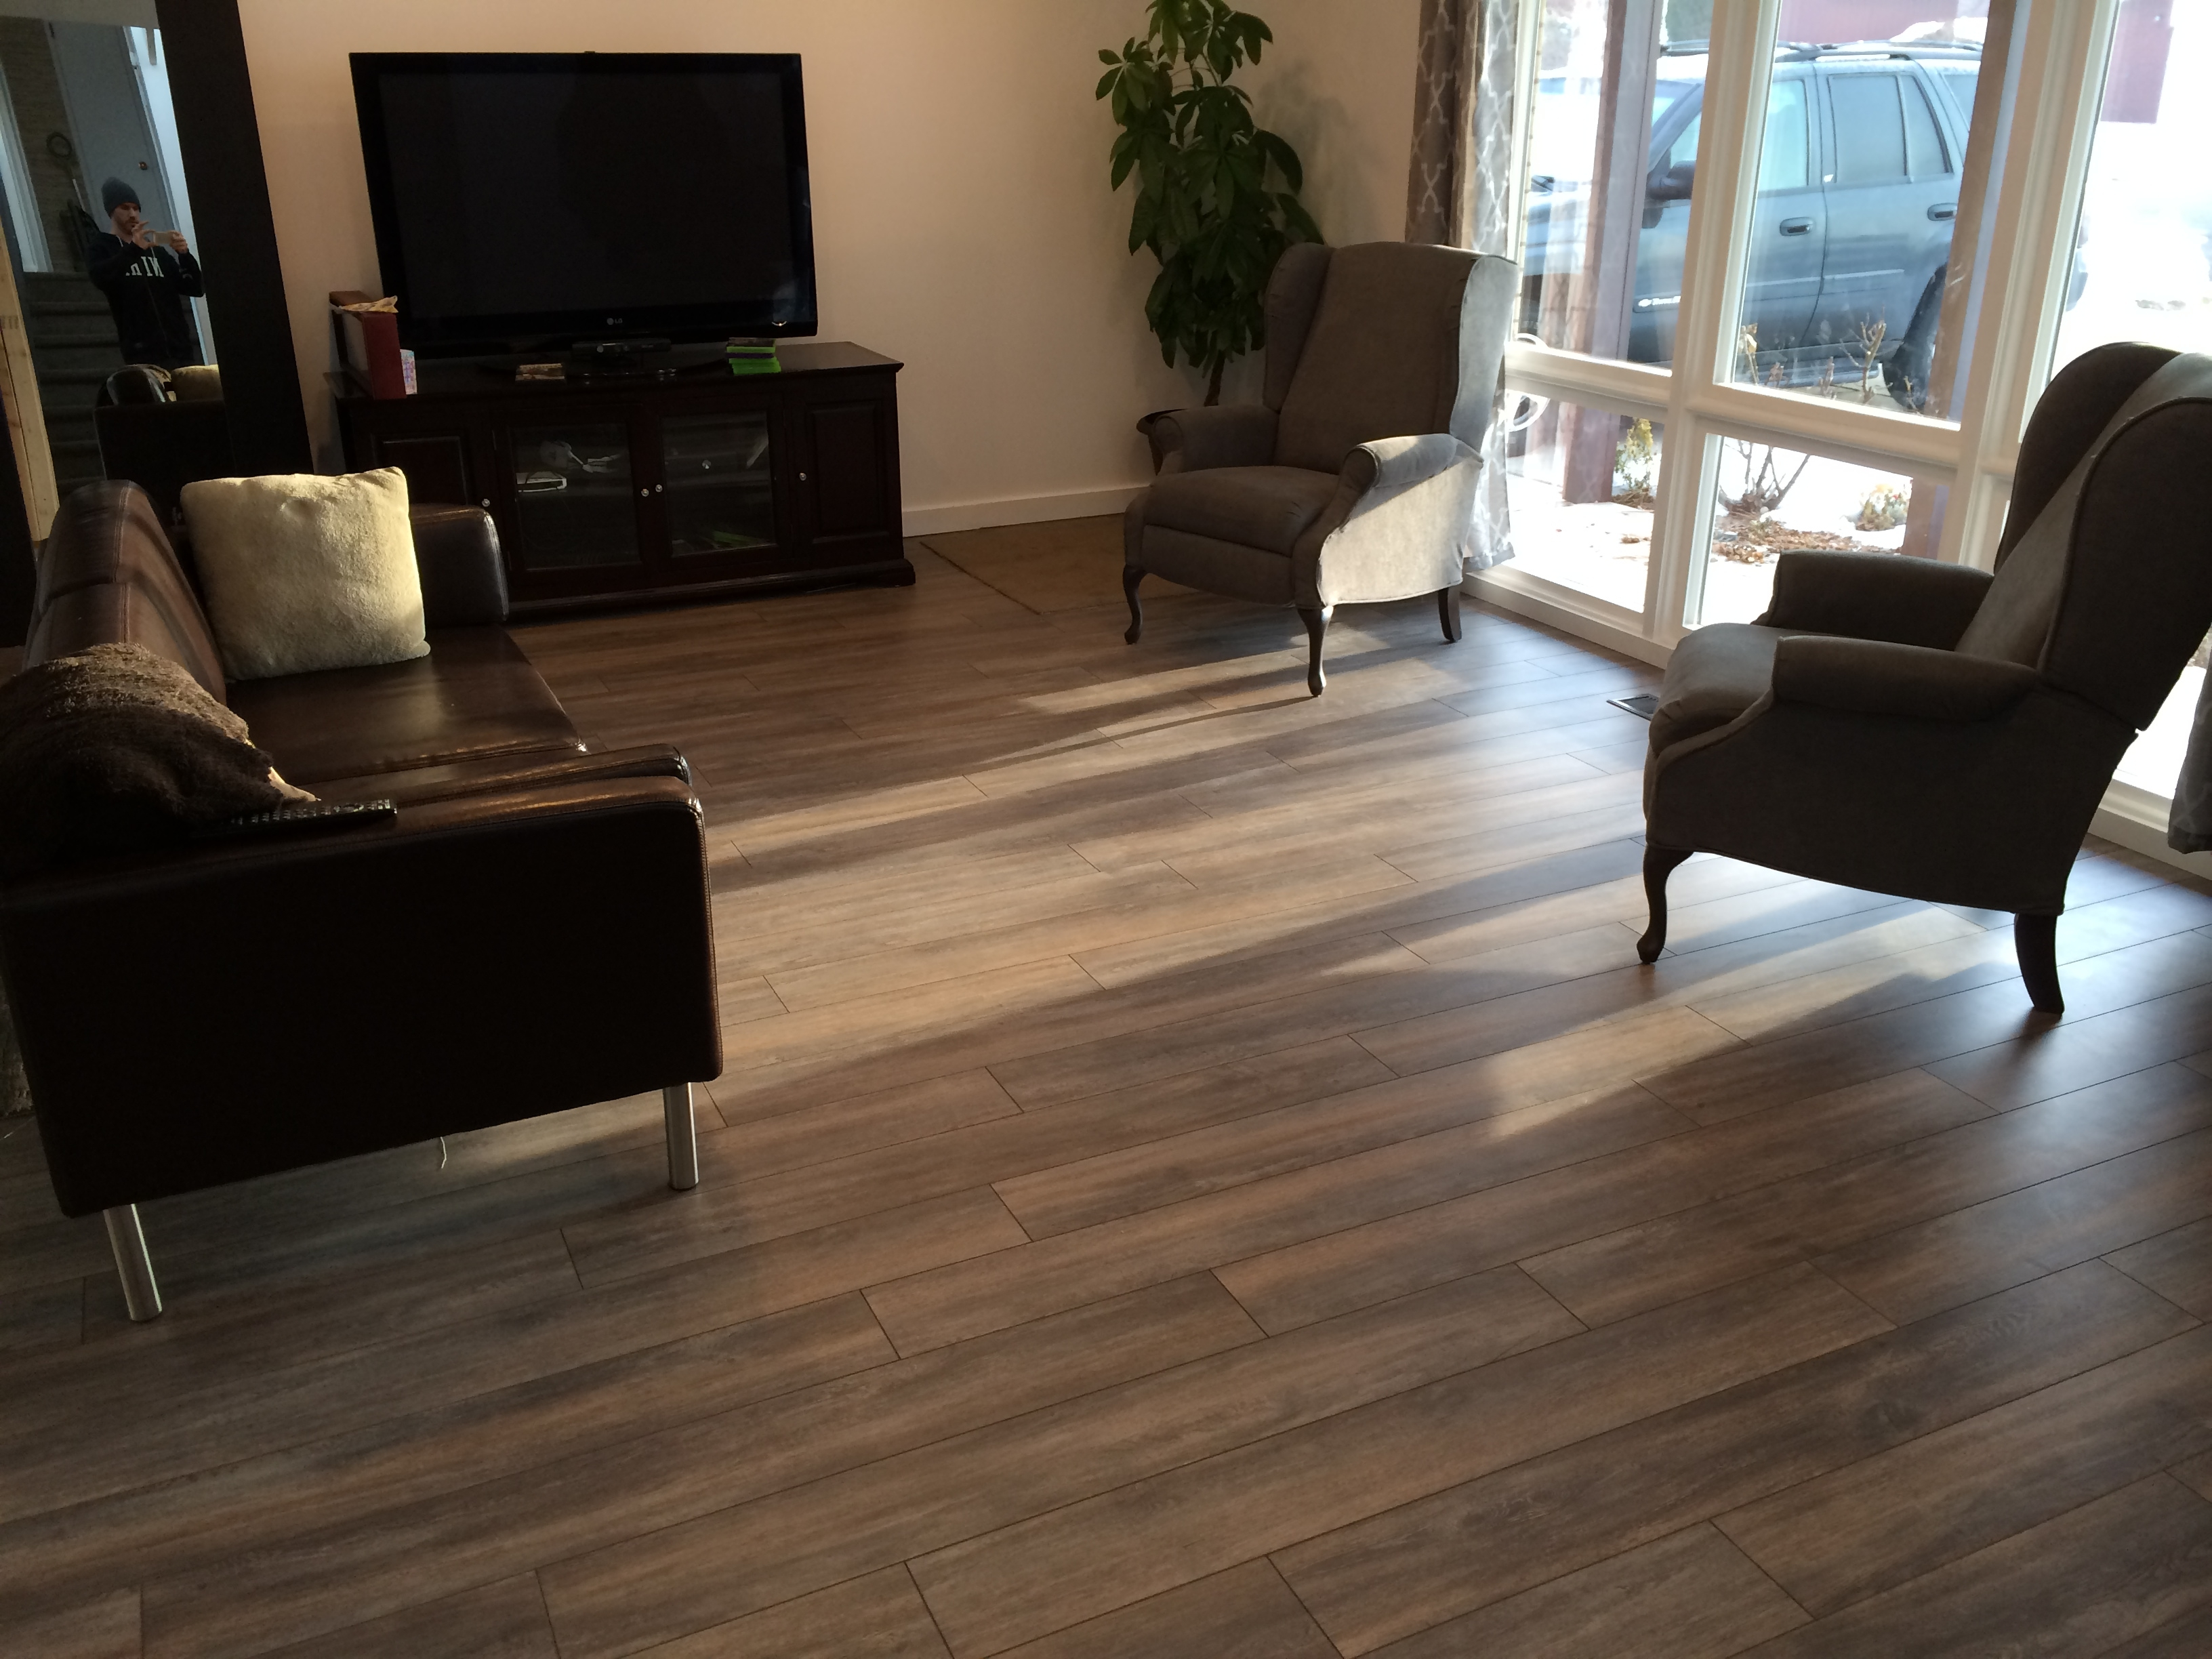 the direction to install my laminate flooring - Best Laminate Wood Floors